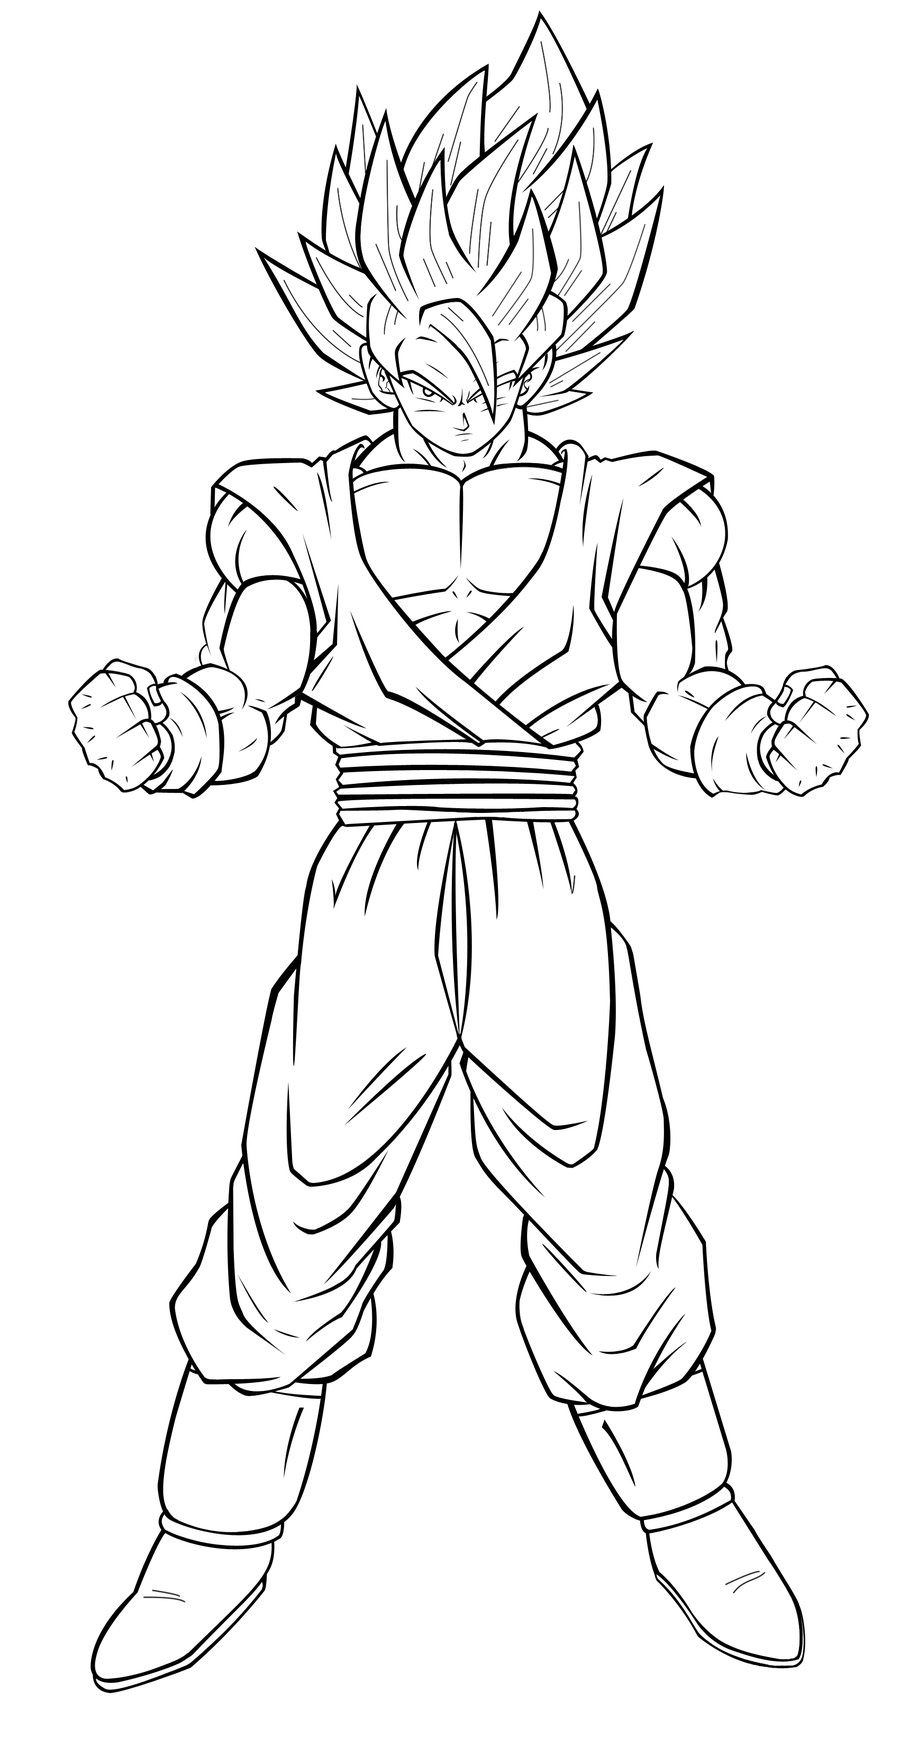 Super goku coloring pages 2 by kelly